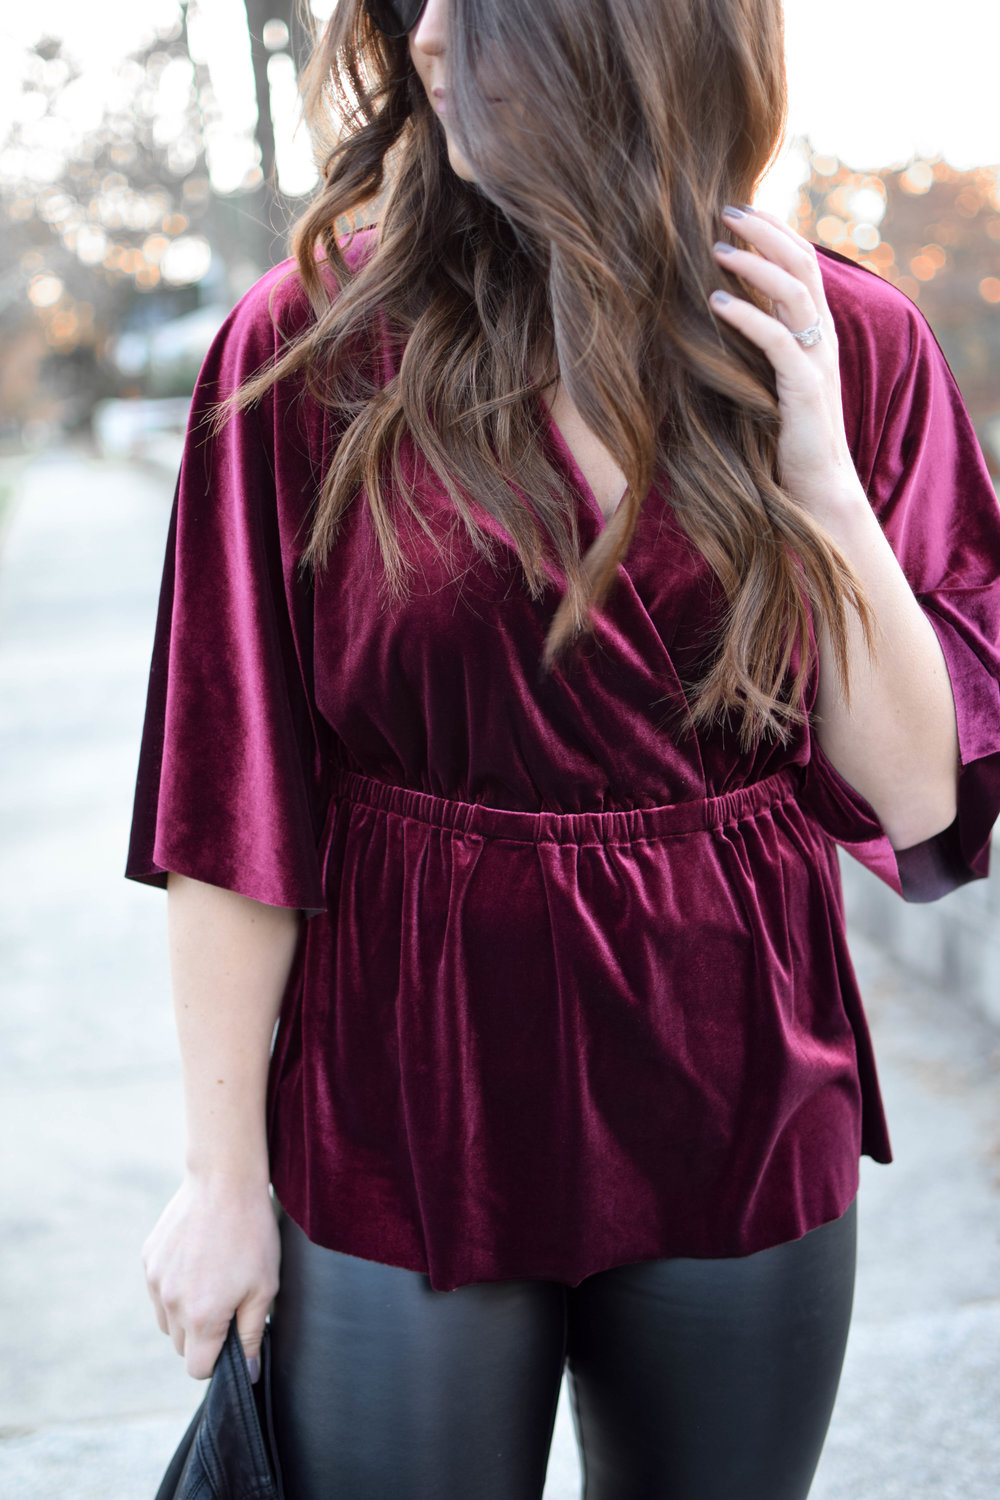 Holiday Outfit Idea #1: Velvet | Pine Barren Beauty | winter fashion, winter style, holiday fashion, velvet top, faux leather pants